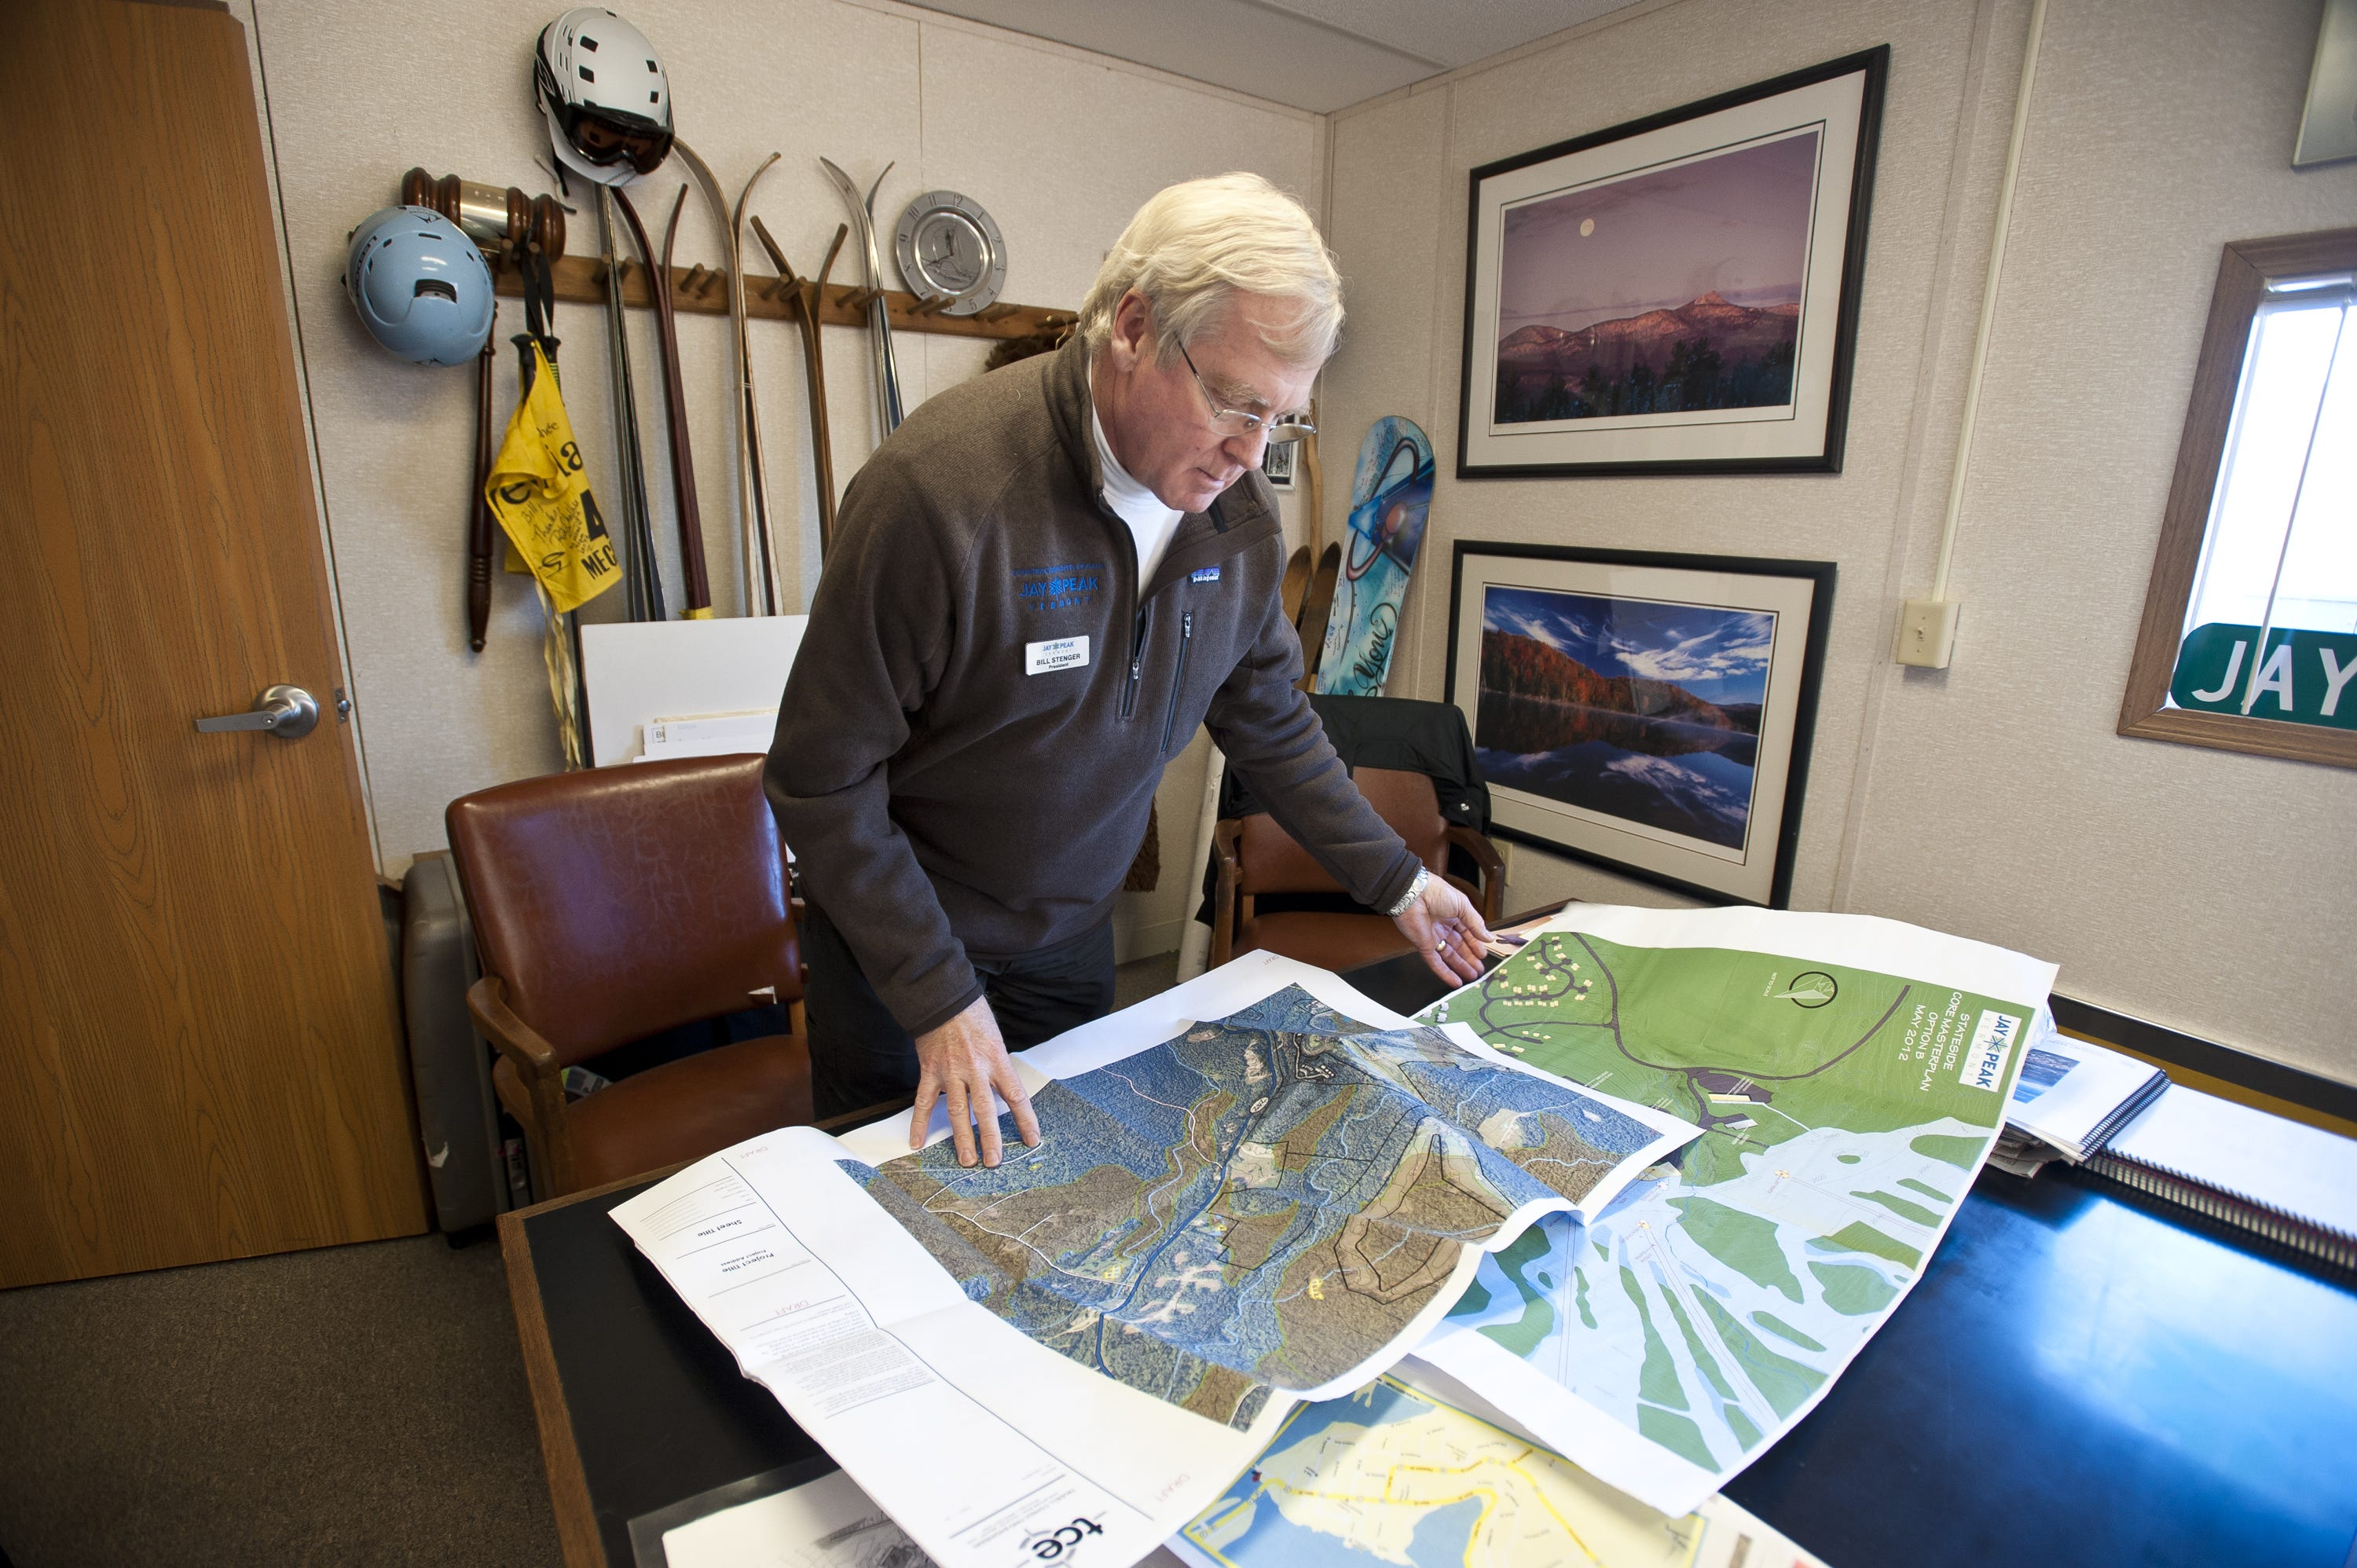 Jay Peak Resort President Bill Stenger looks at proposed development plans and maps in his office on Monday, November 19, 2012.